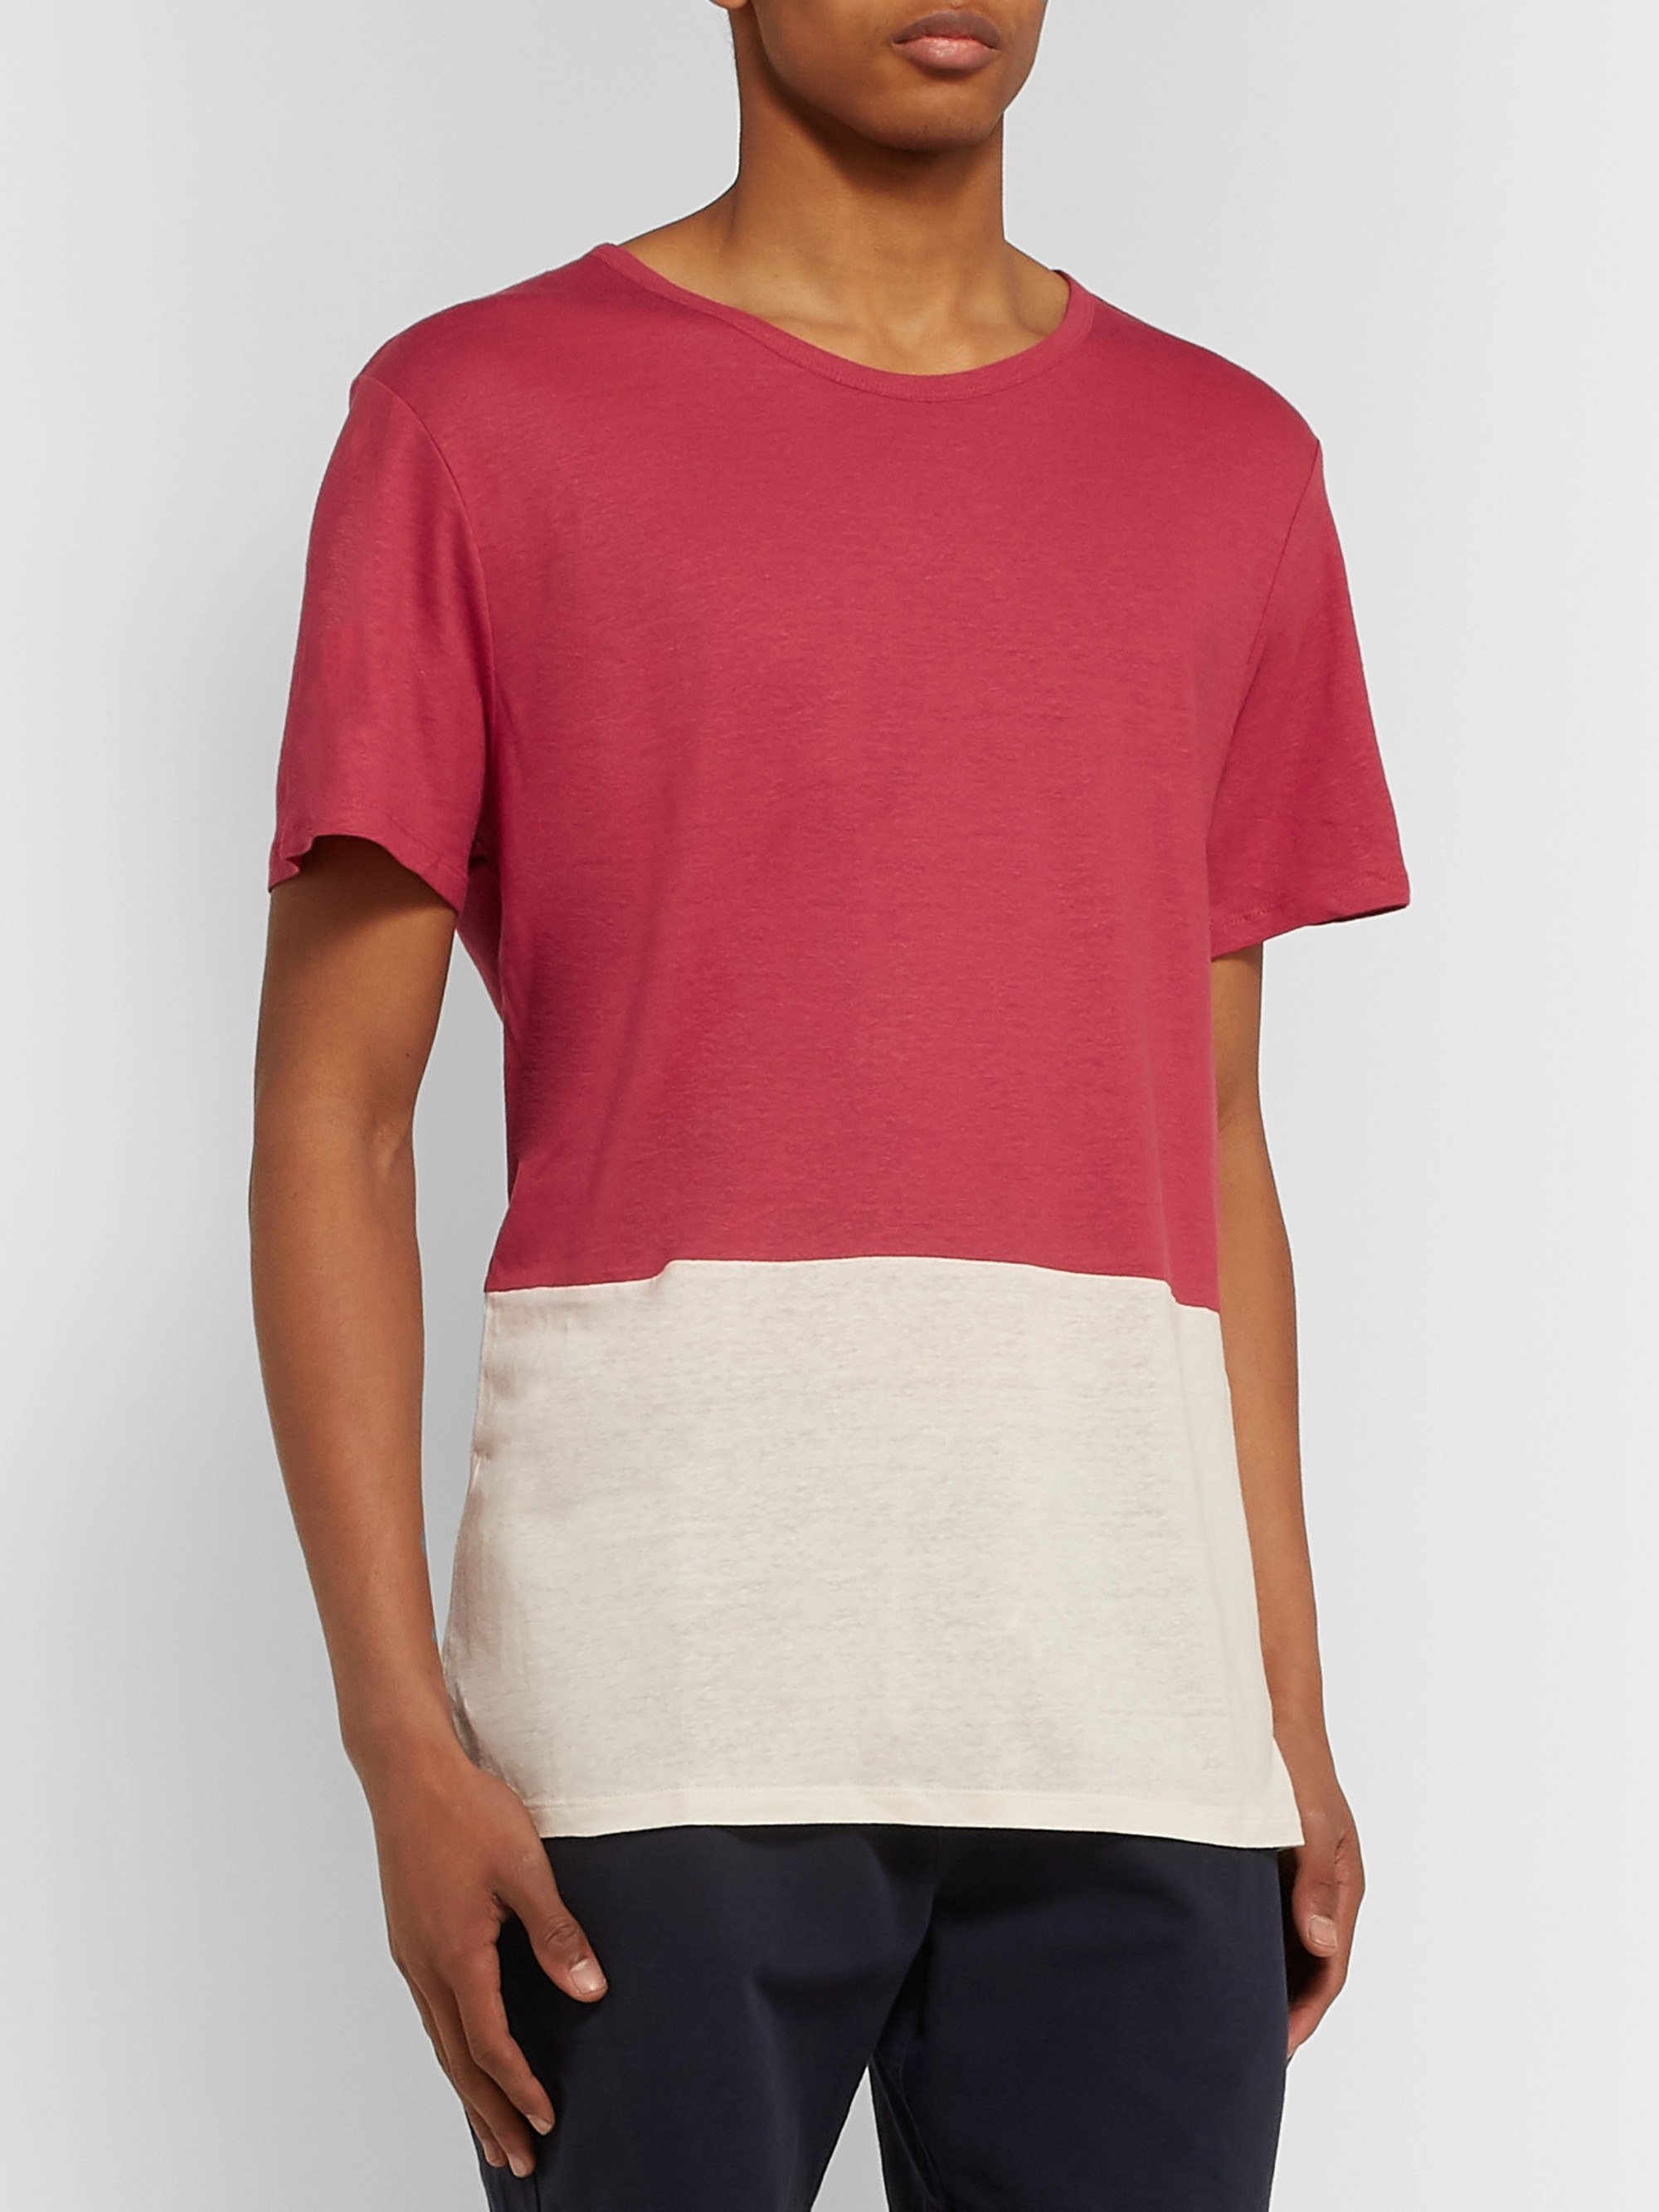 Onia Chad Colour-Block Linen and Modal-Blend Jersey T-Shirt